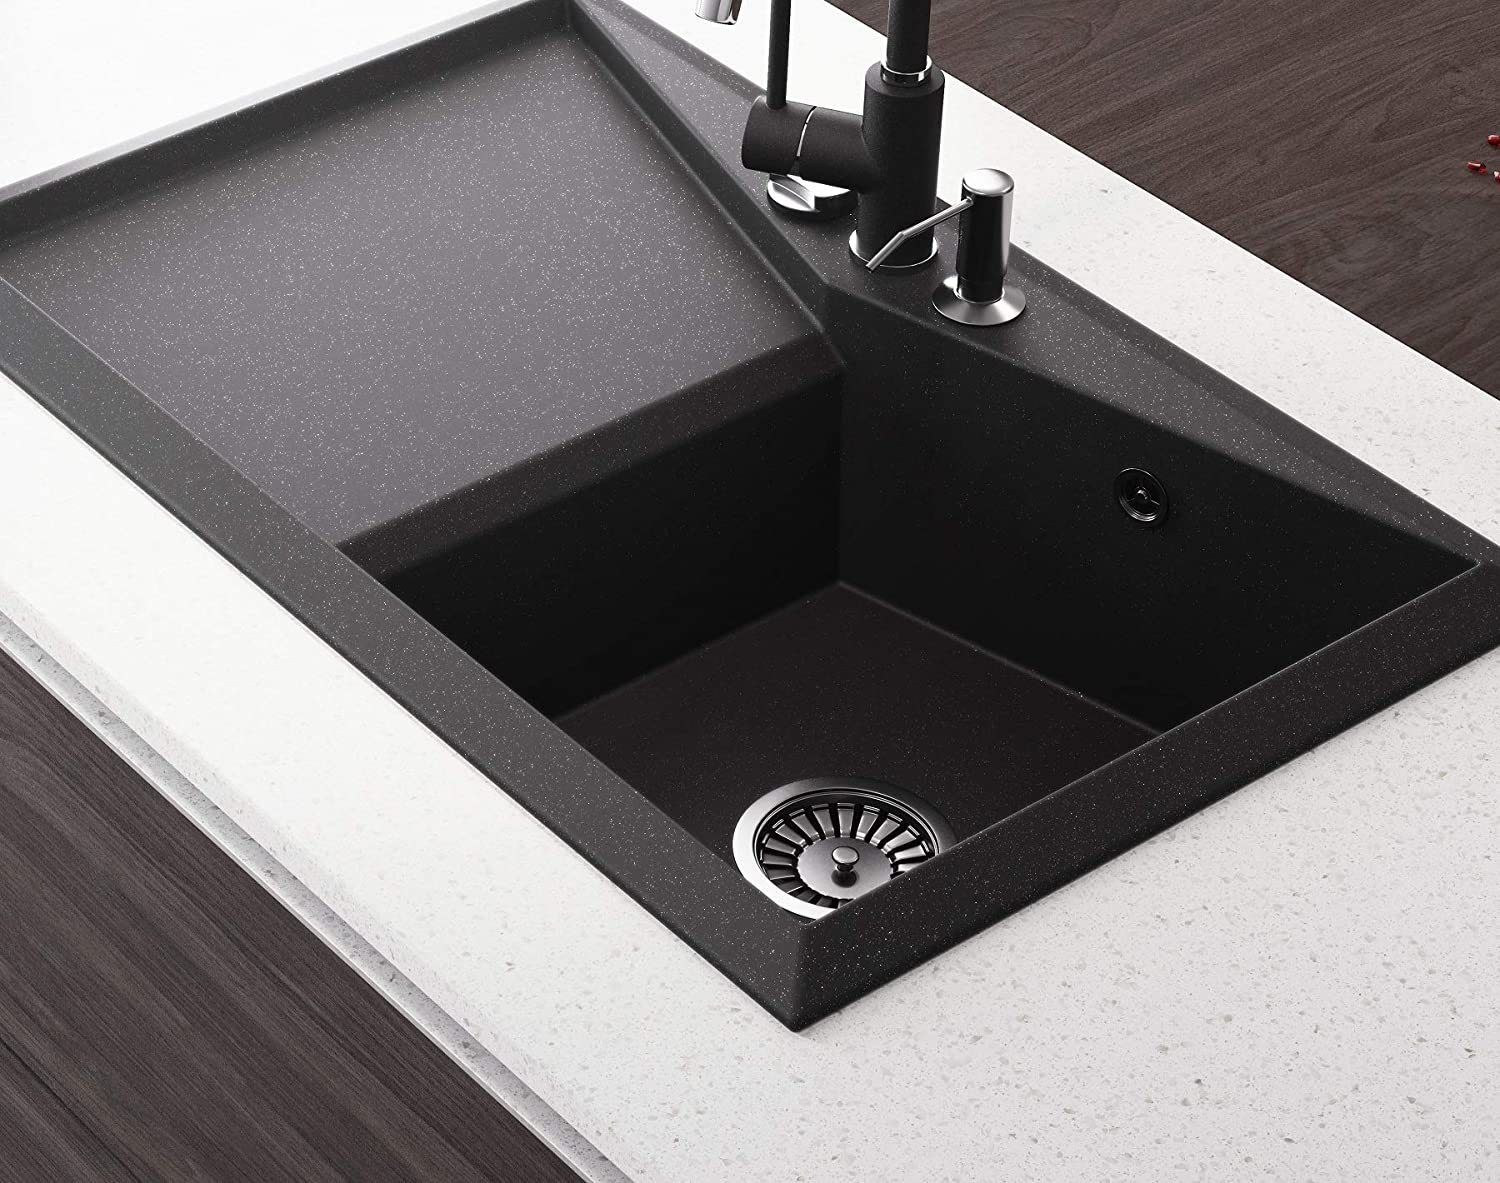 Black Sink Lavello Diamond 100LT 32 Granite Sink Composite Drop In Single Bowl Big Range of Kitchen Sinks Drainboard Position Left